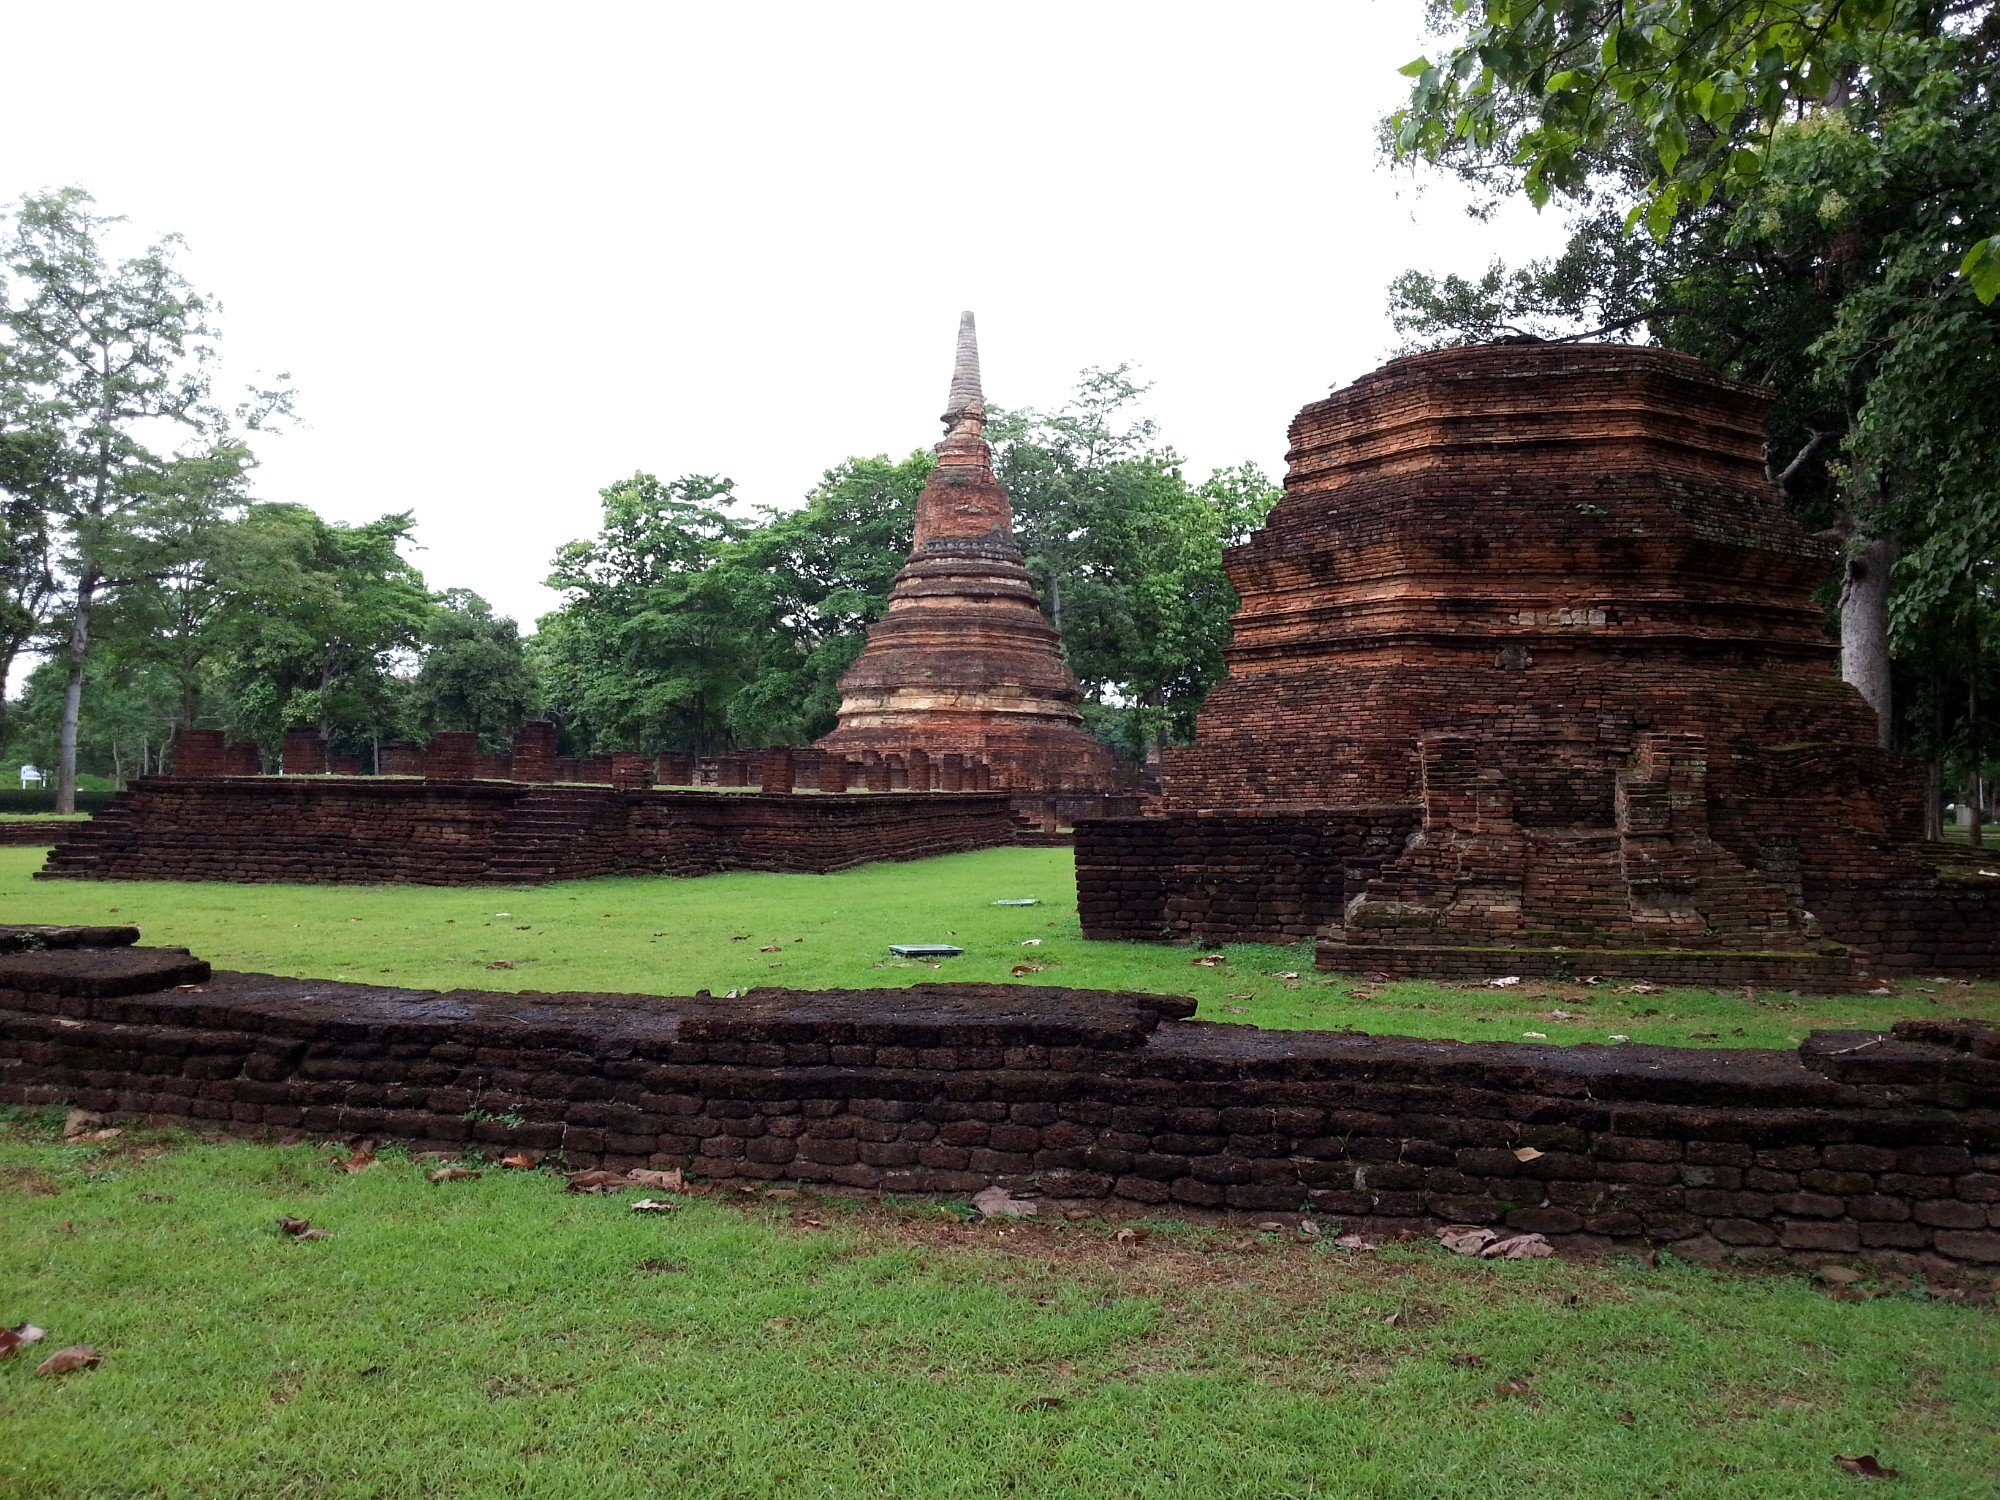 Wat Phra That at Kamphaeng Phet Historical Park